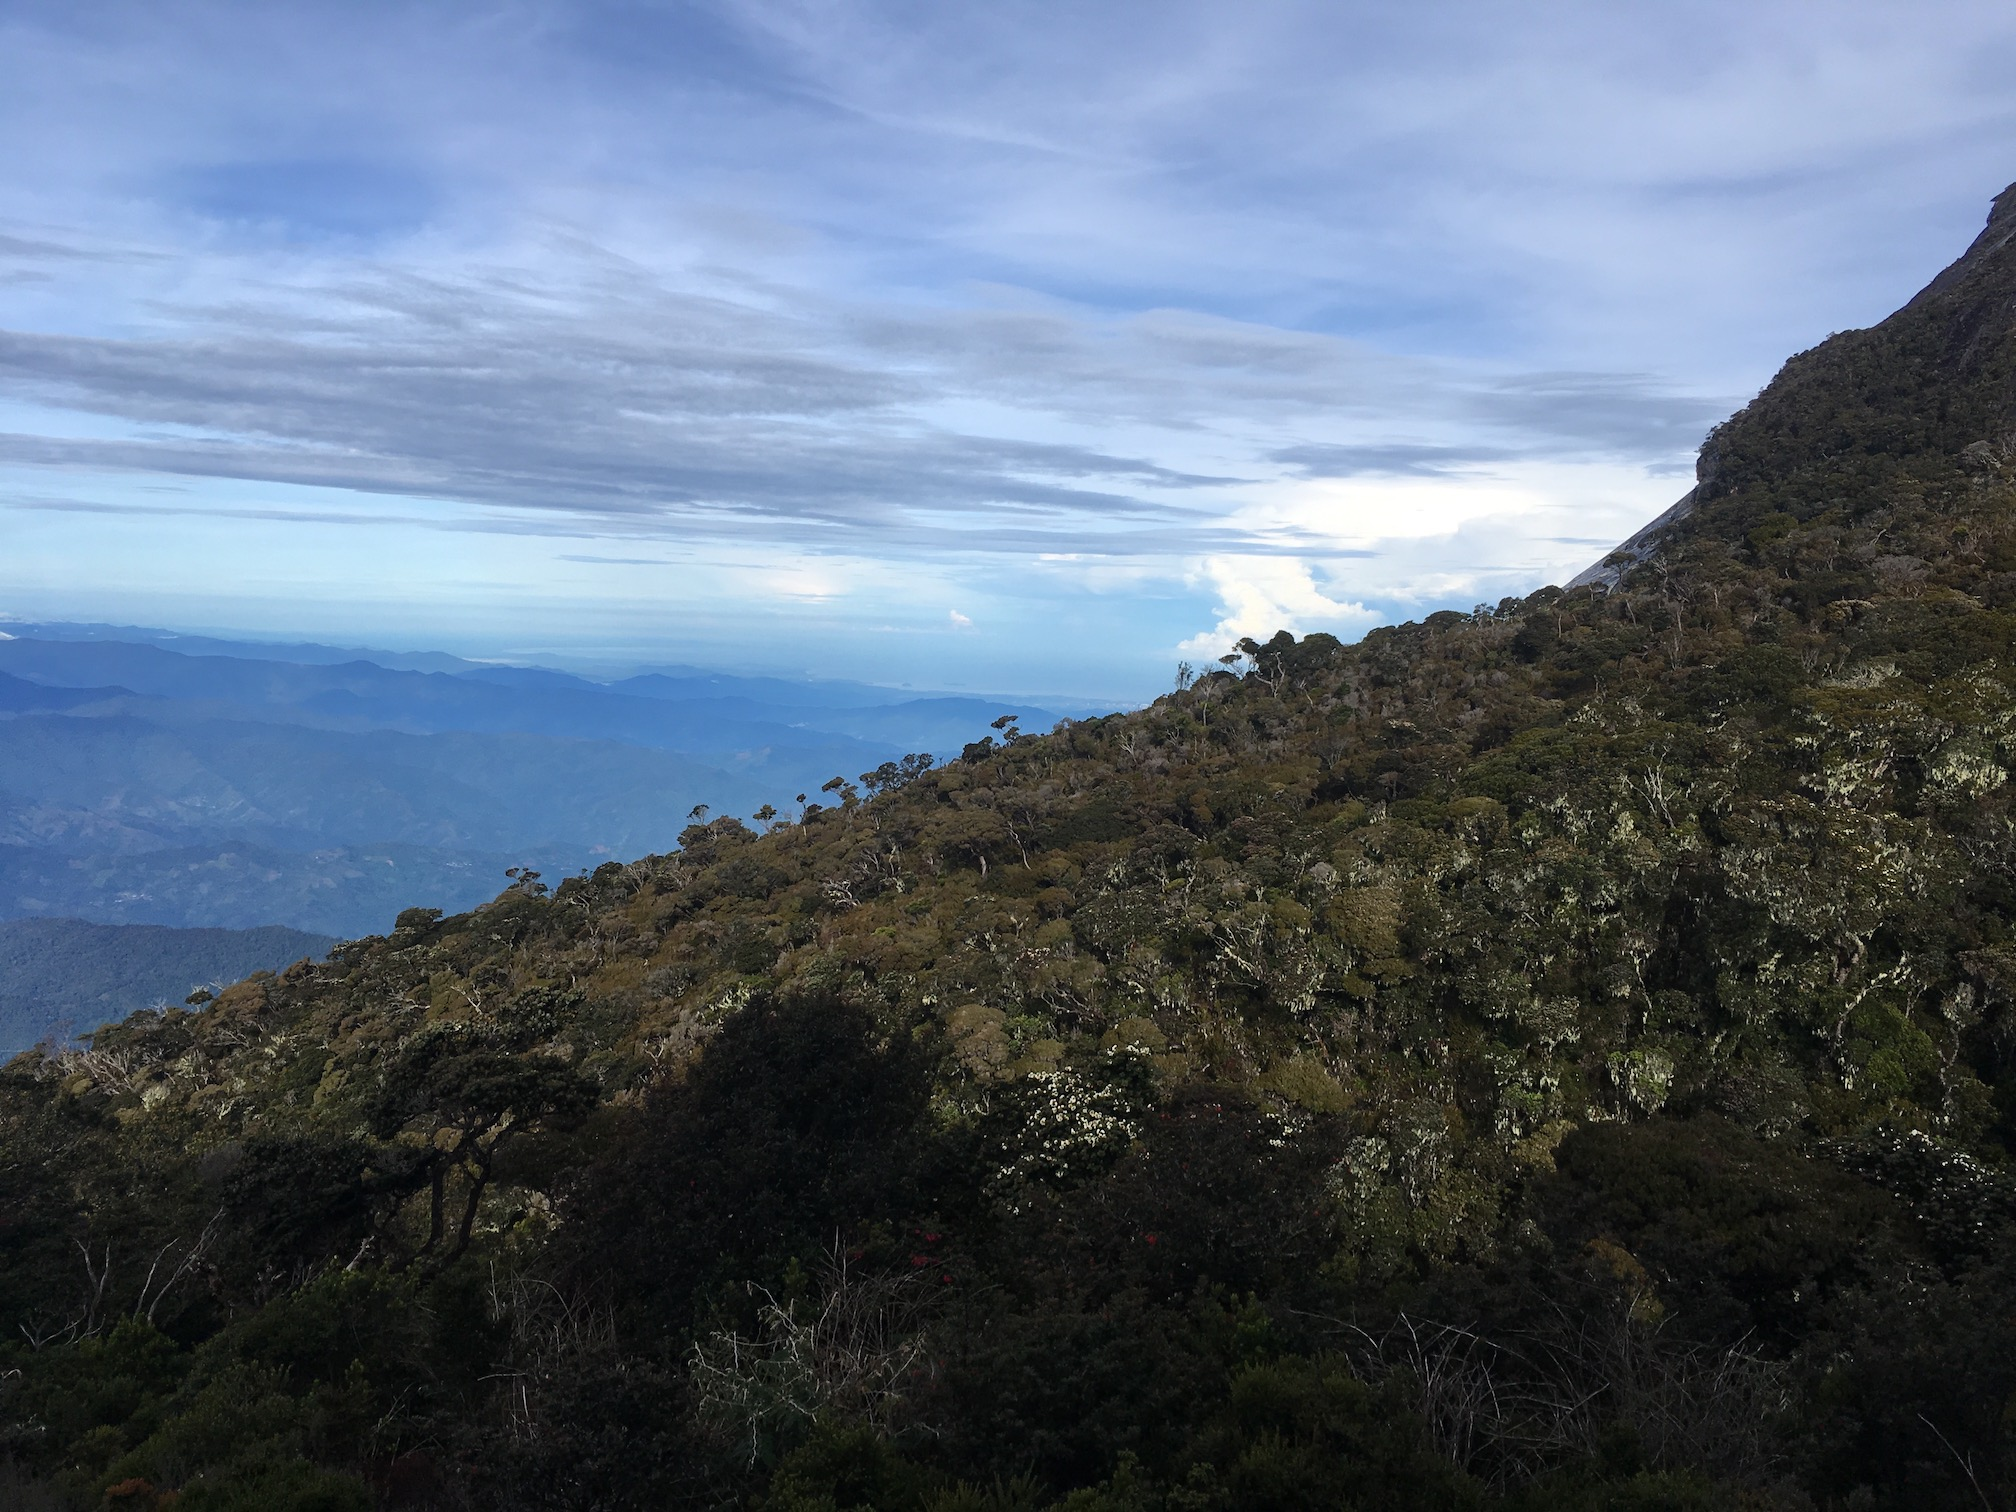 View from Mount Kinabalu.